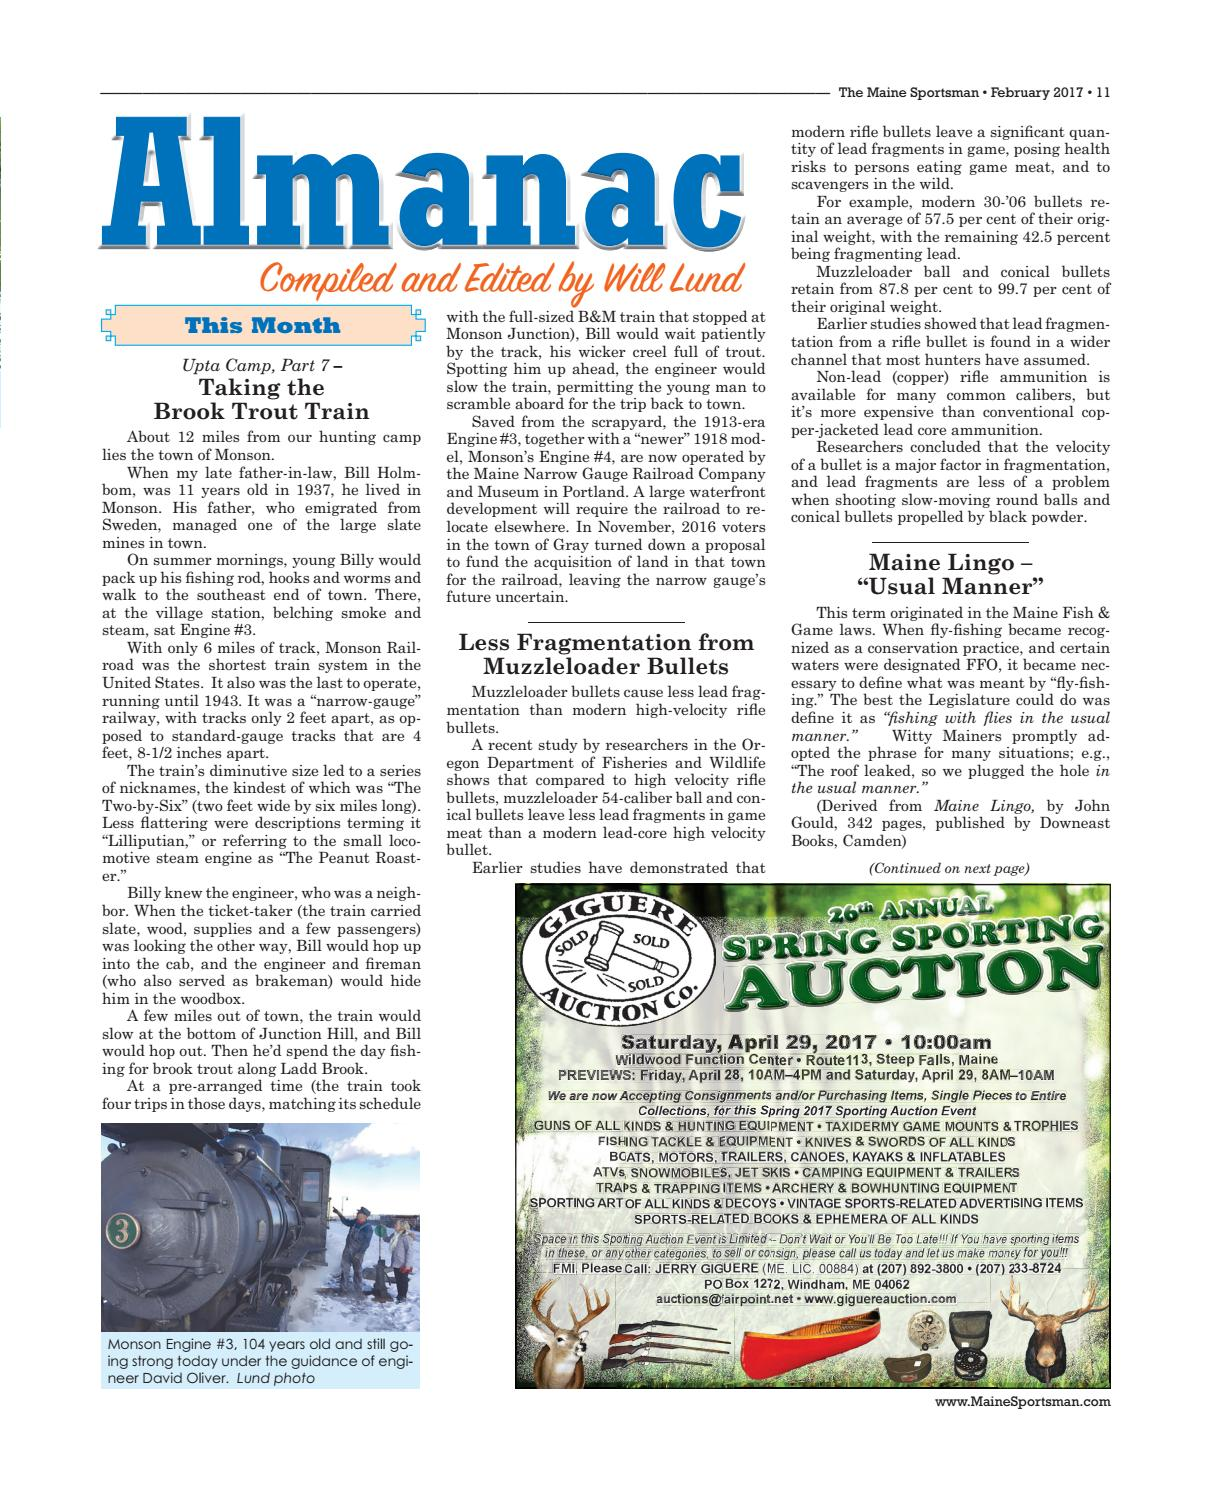 The Maine Sportsman - February 2017 by The Maine Sportsman